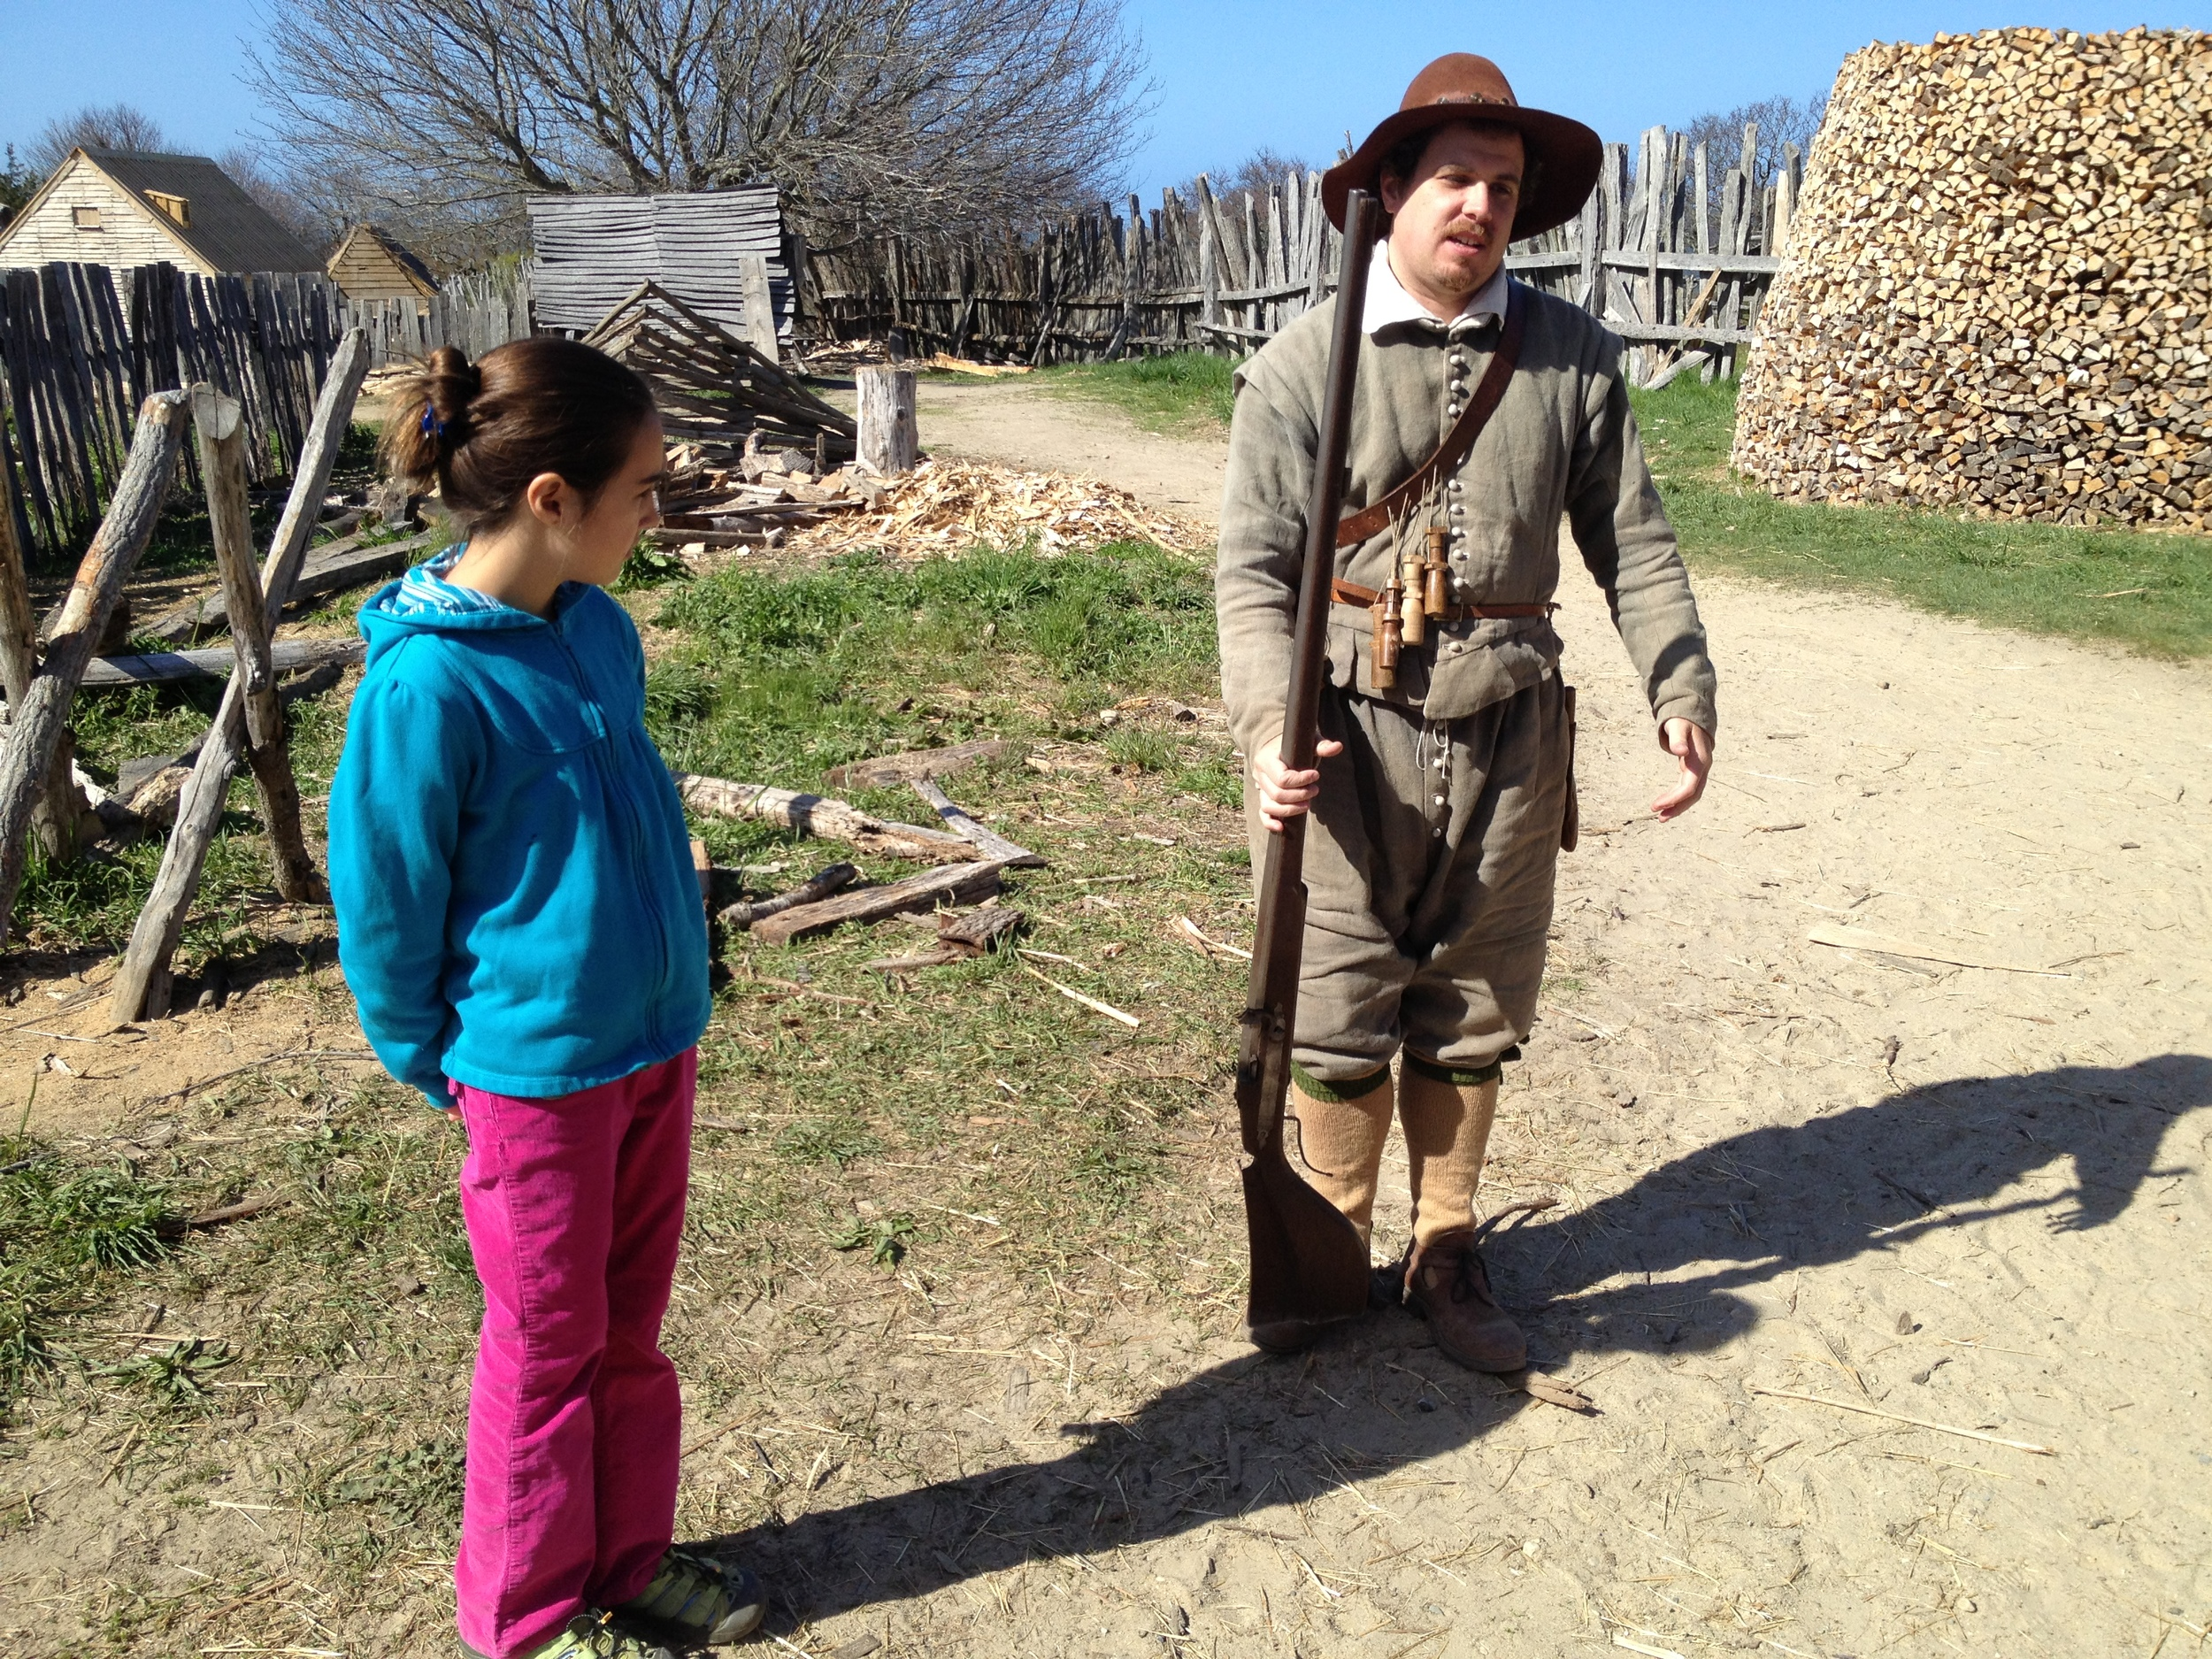 The girls learning from a Plimouth character who reenacted an actual person who sailed on the Mayflower and settled there.